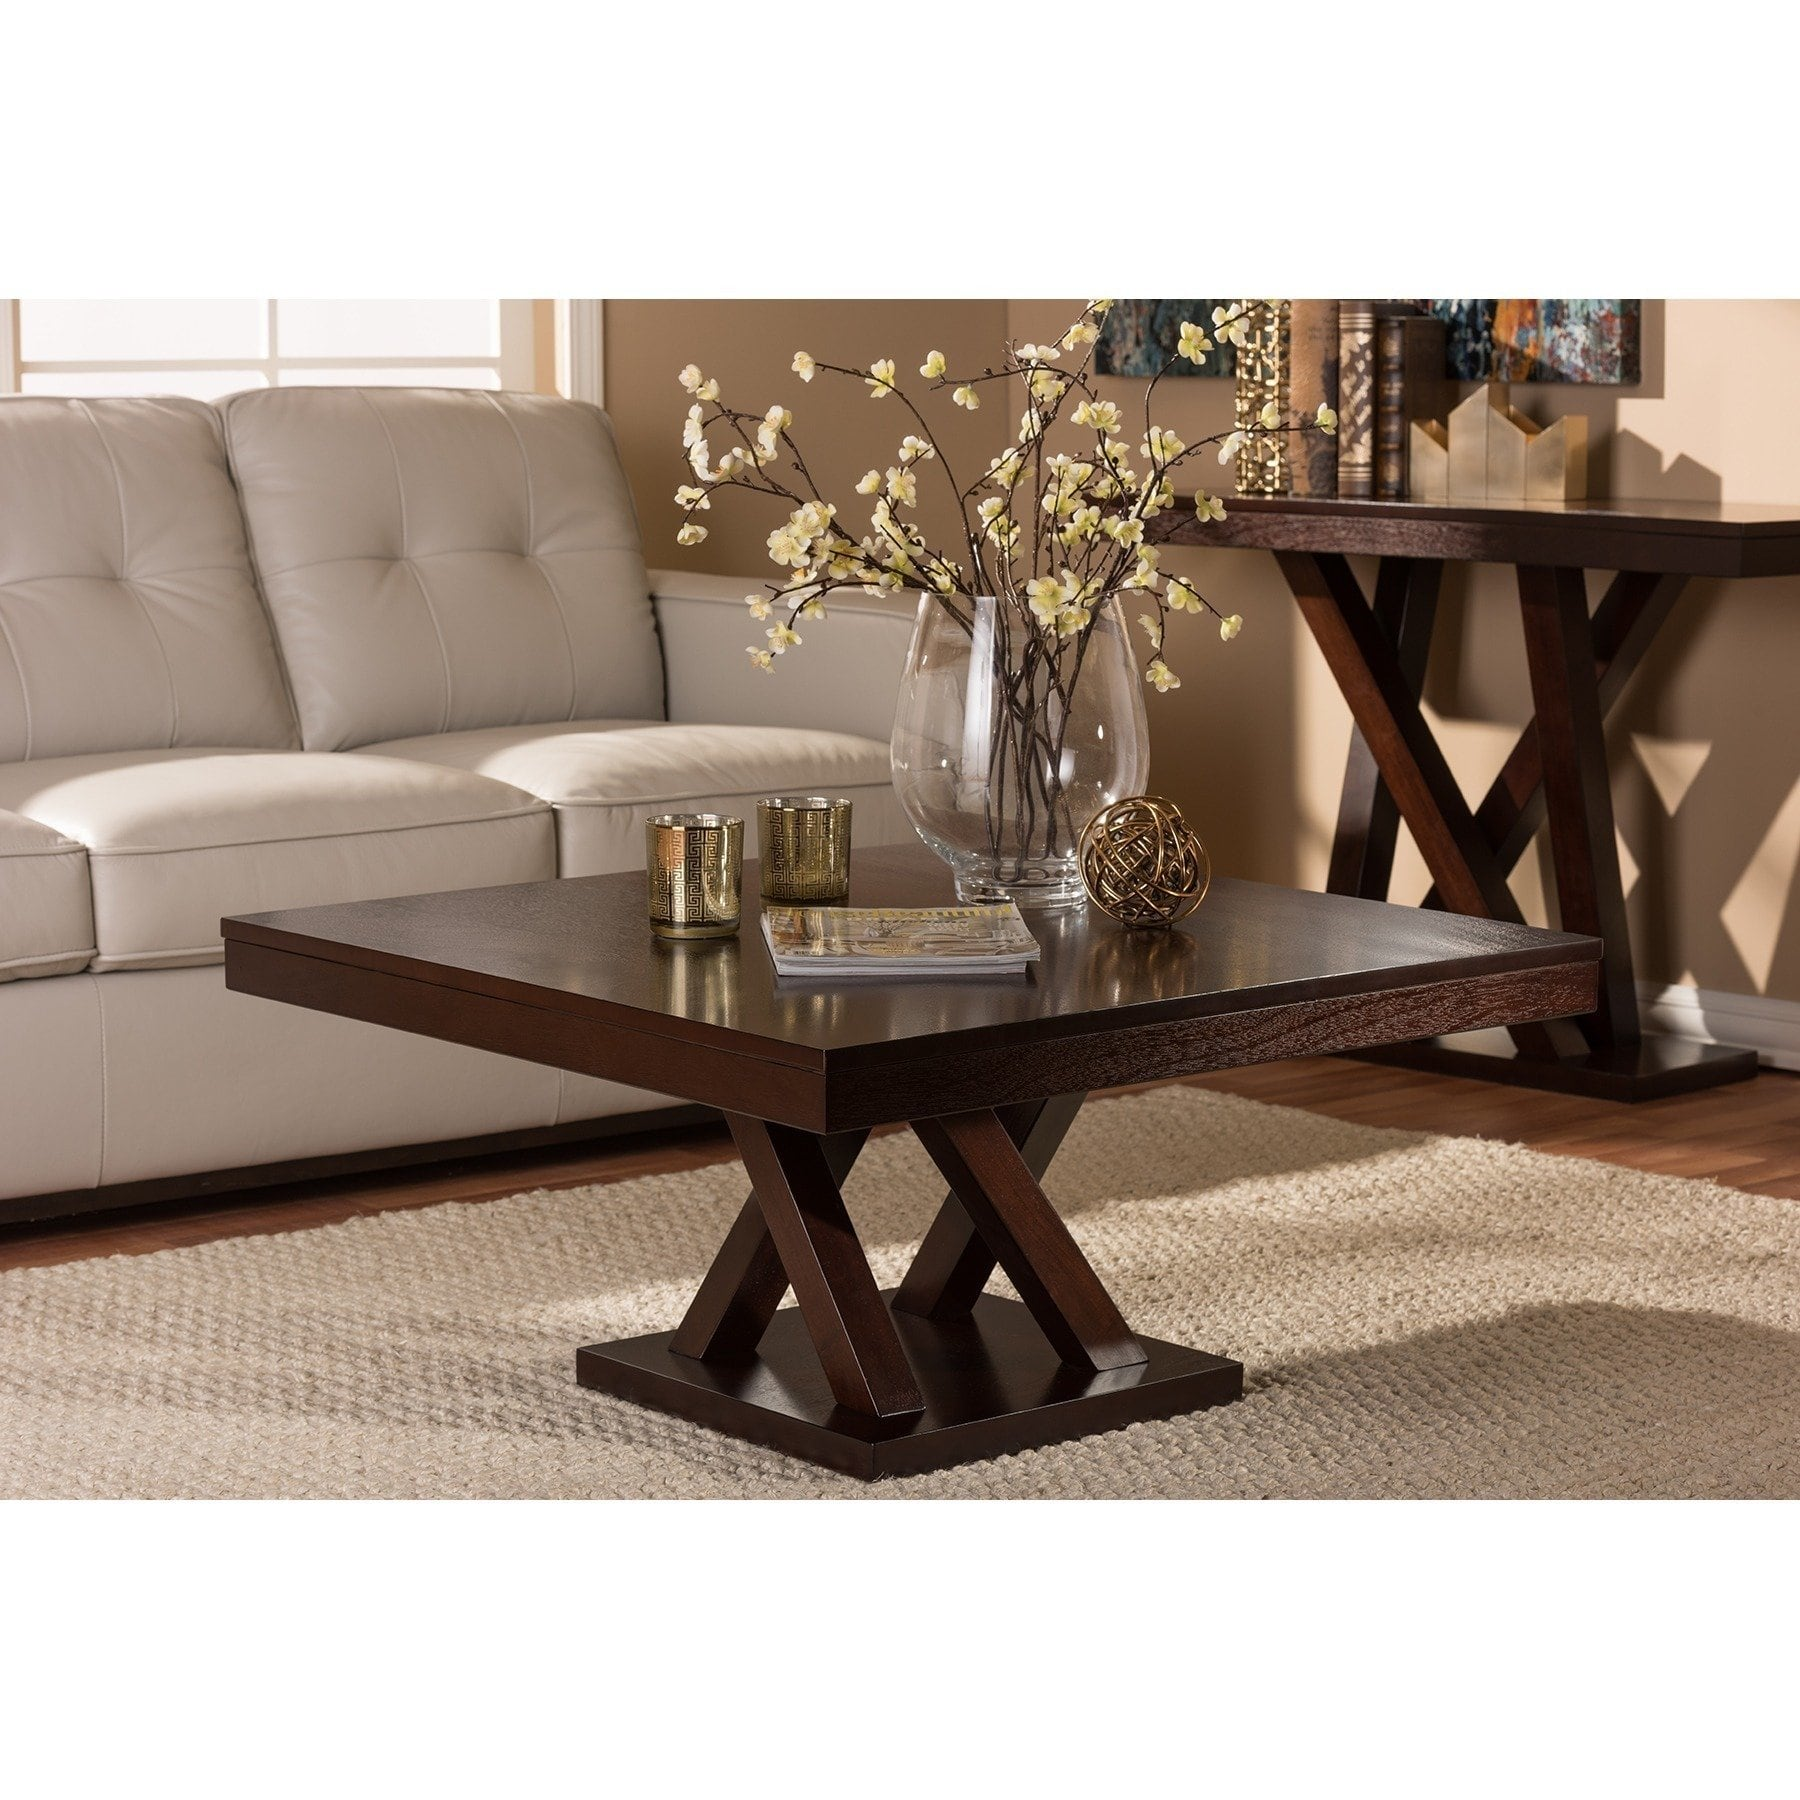 modern dark brown coffee table baxton studio free shipping everdon and end tables extra large patio furniture square primitive best slipcovered sofas ethan allen signature firm